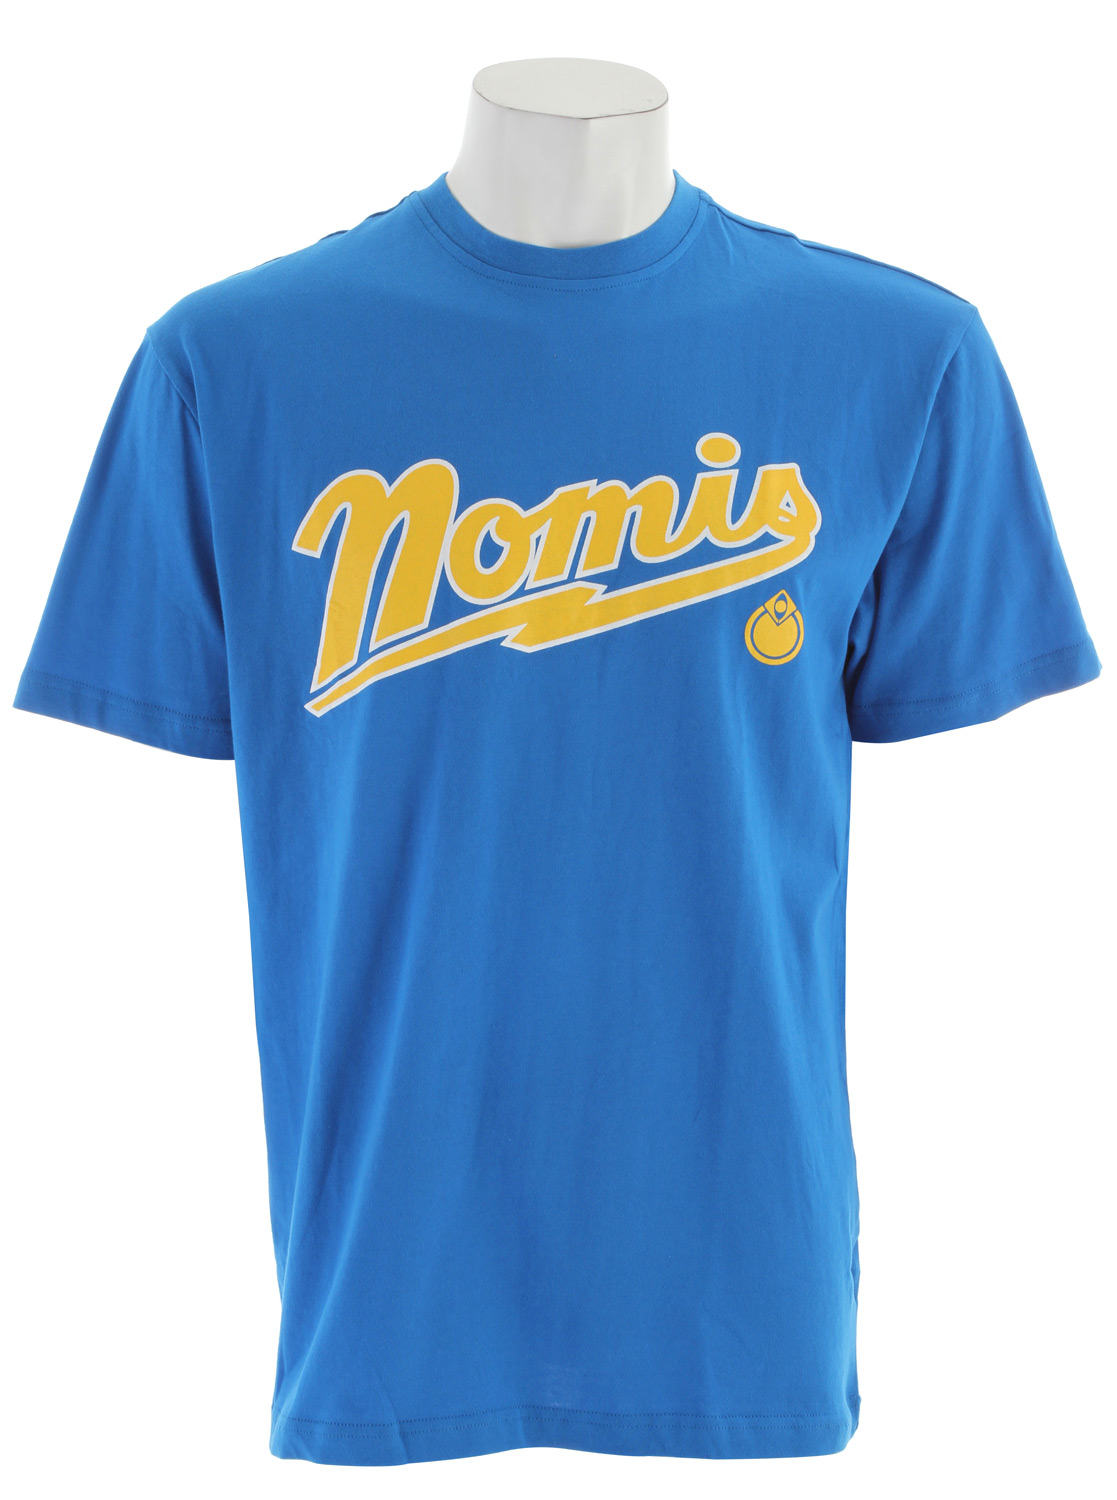 Key Features of The Nomis Bolts T-Shirt: Regular Fit Crew Neck Short Sleeve 100% Cotton - $21.95